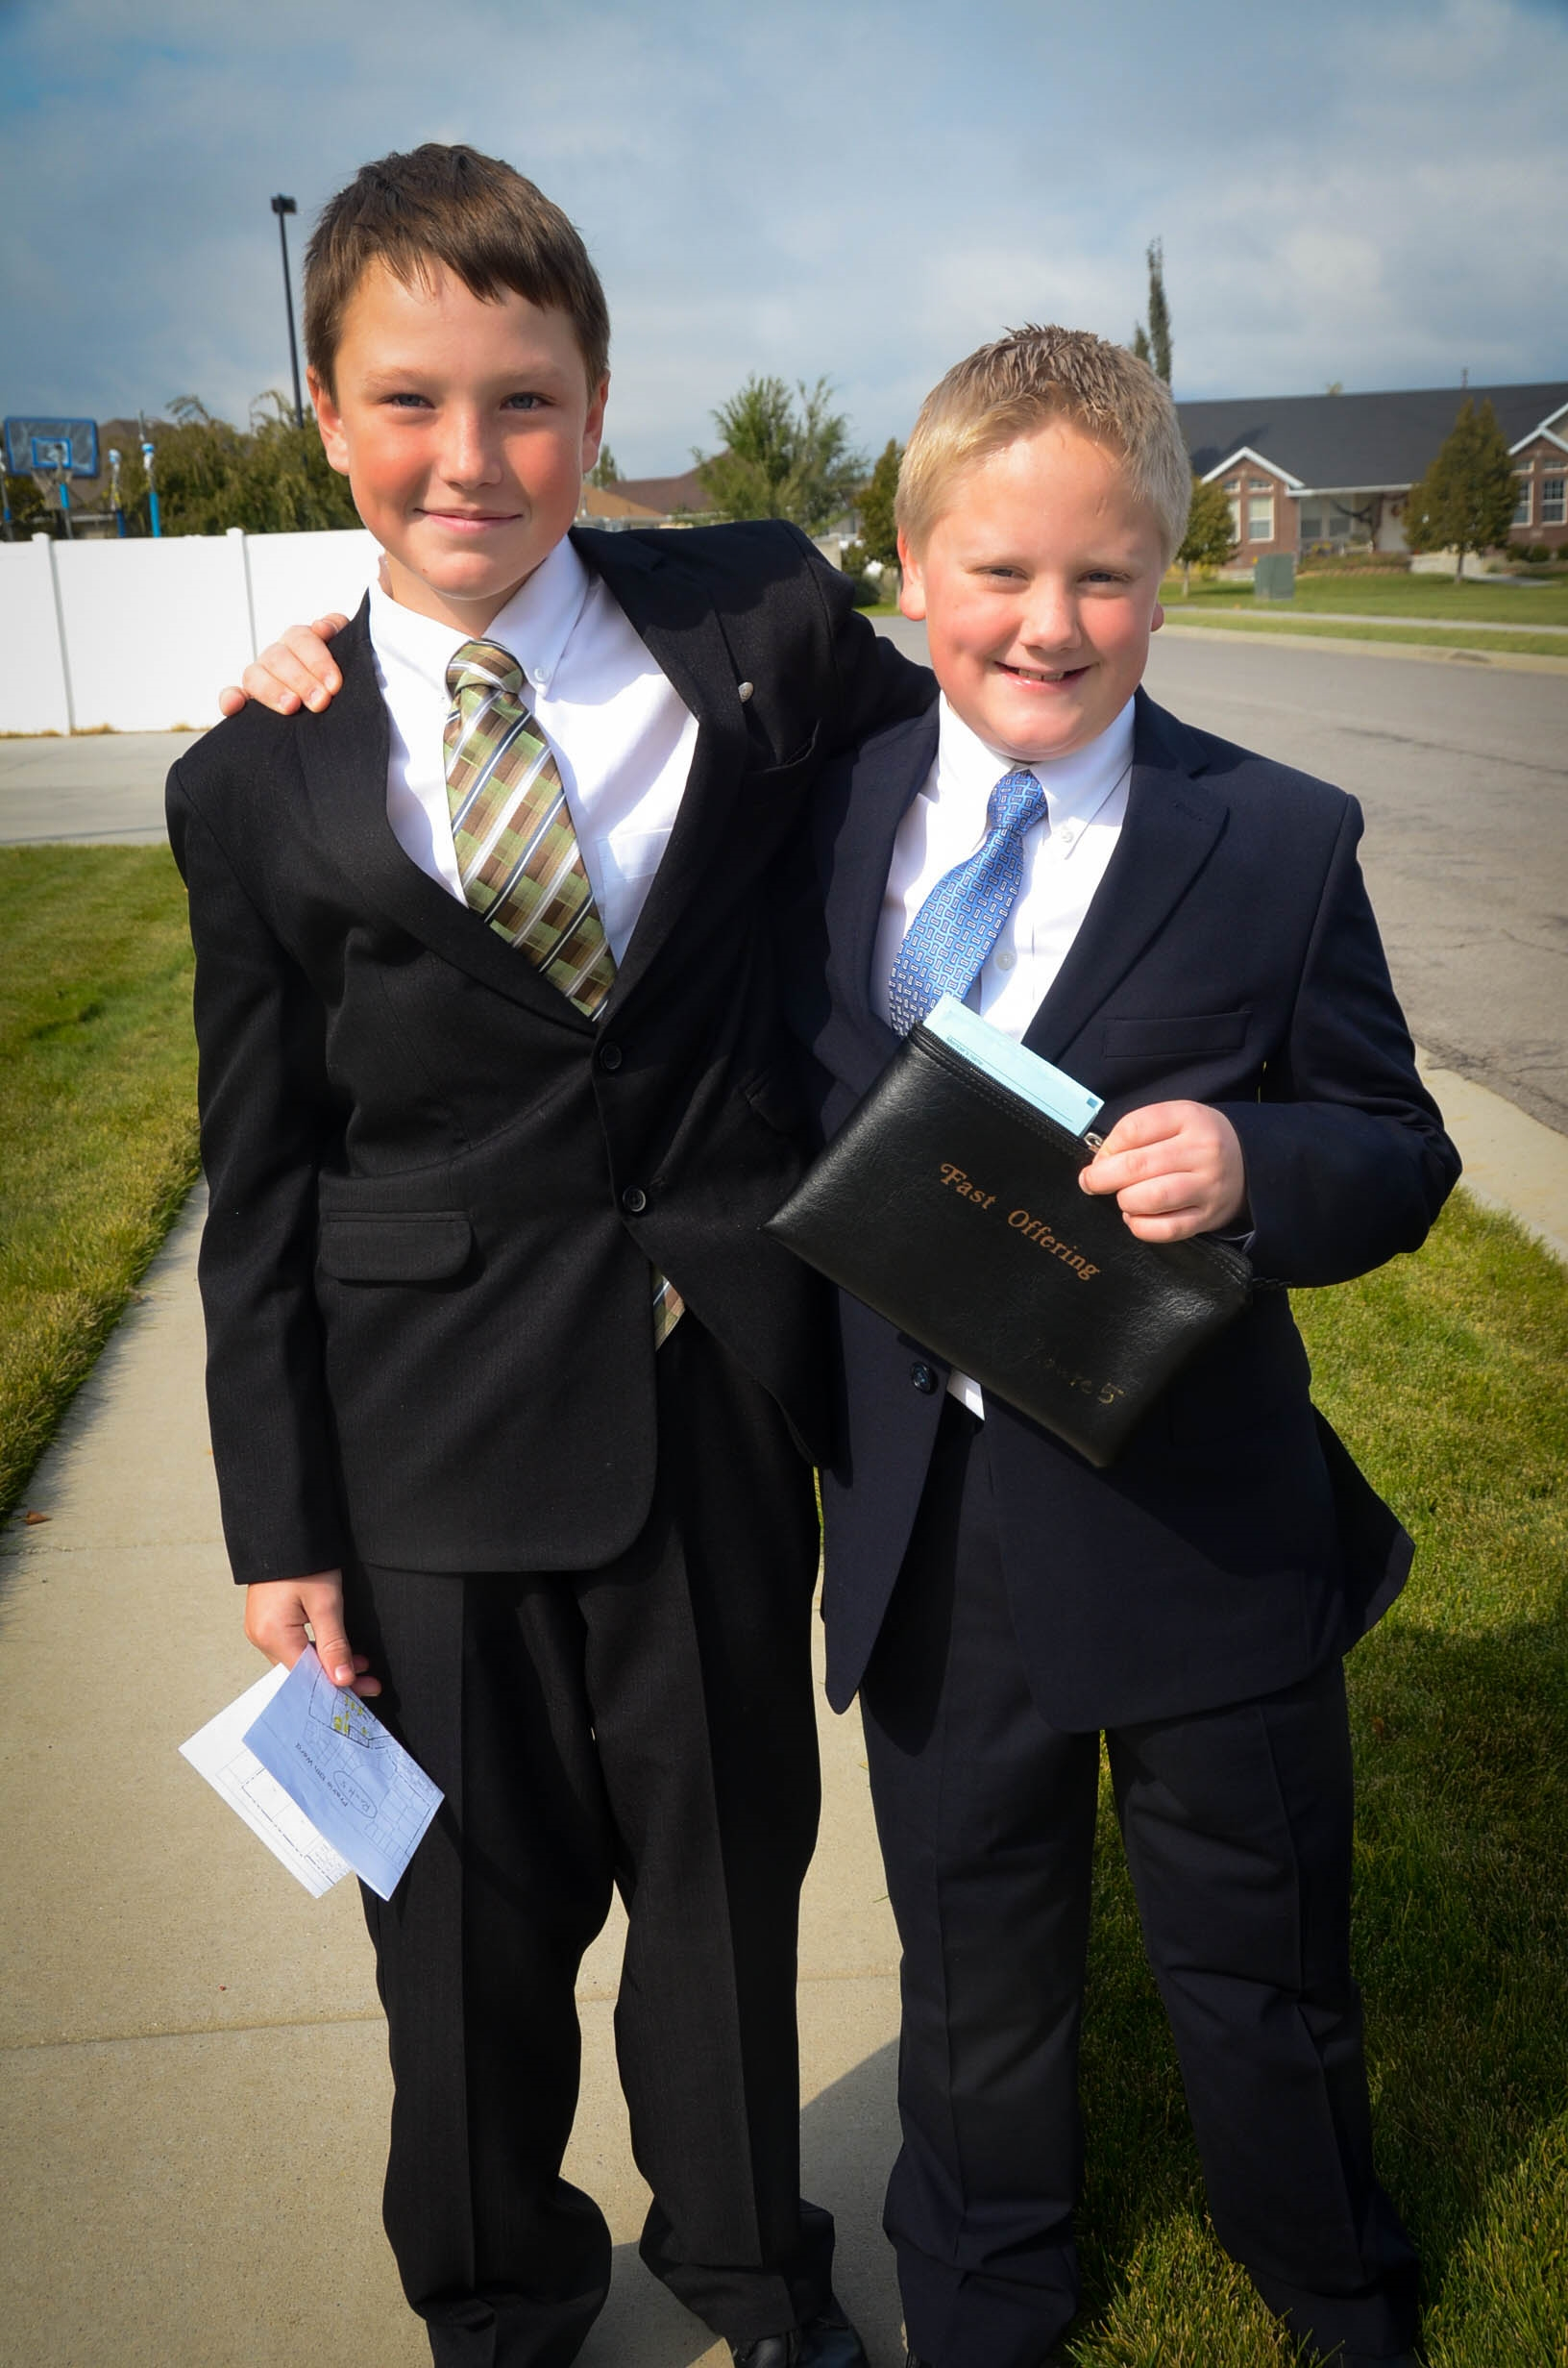 The First Presidency announced changes Dec. 14 to the timeline children and youth in The Church of Jesus Christ of Latter-day Saints will complete Primary, move from one class or quorum to the next and attend the temple for the first time. The changes, effective January 2019, also impact when young men may be ordained to priesthood offices.